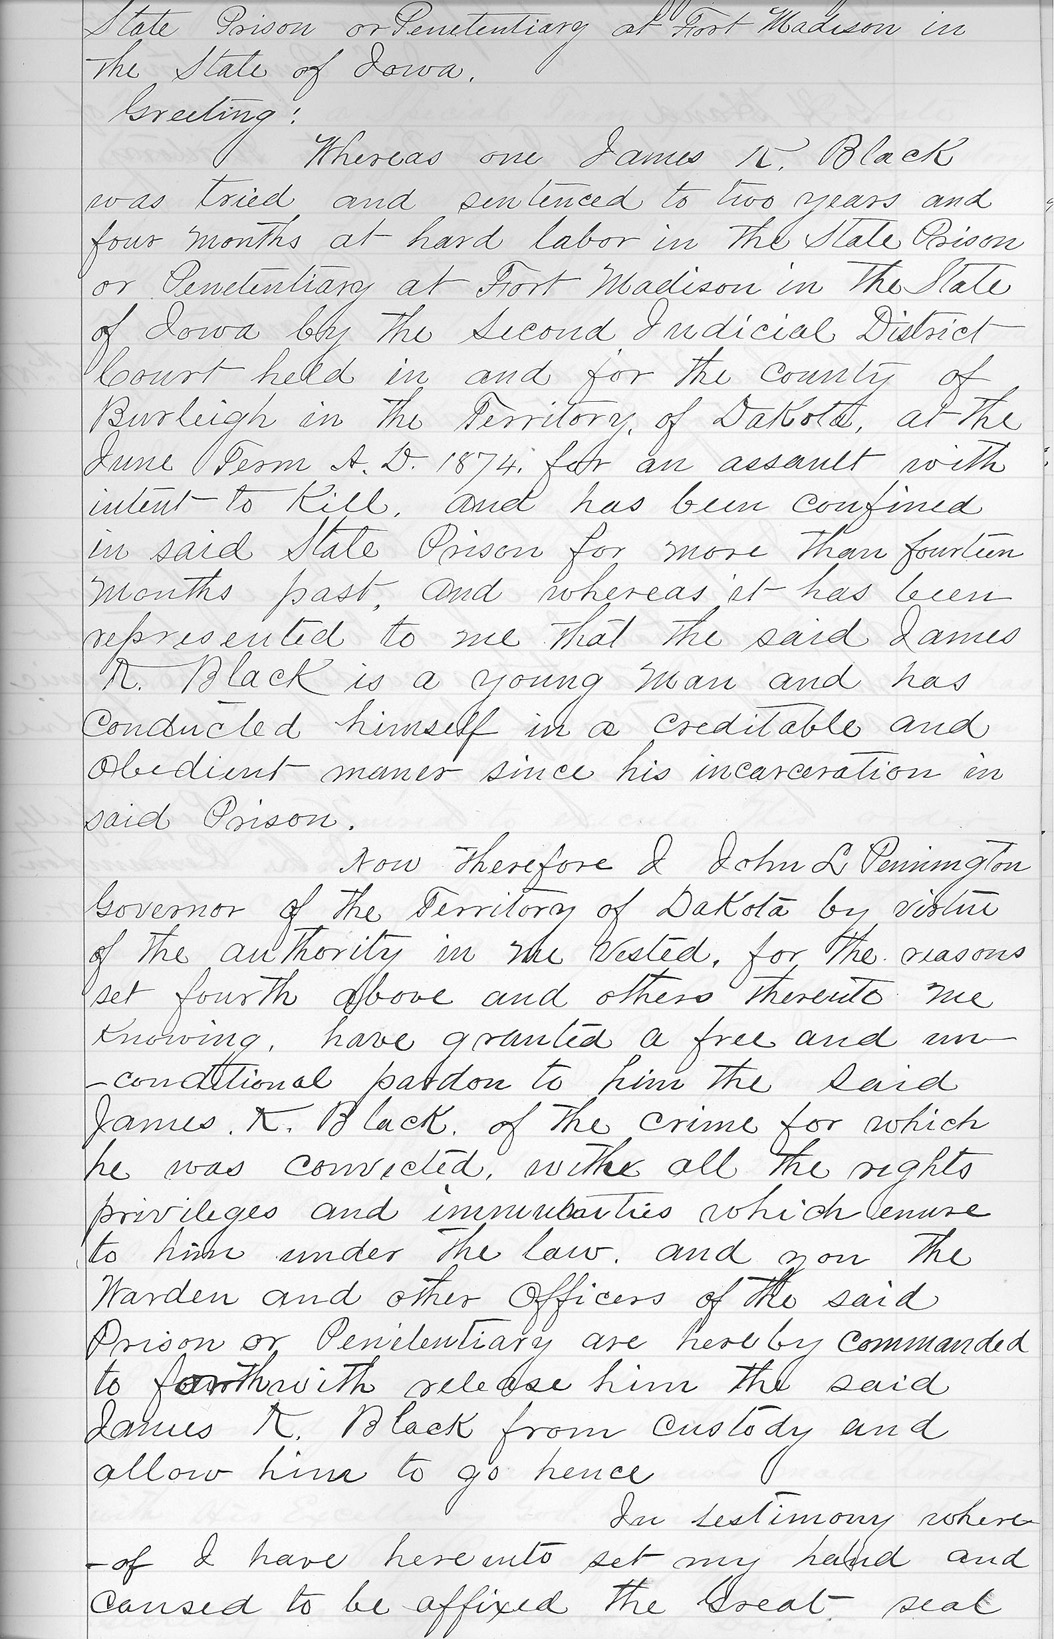 Pennington's Pardon of James Black (Page 1)